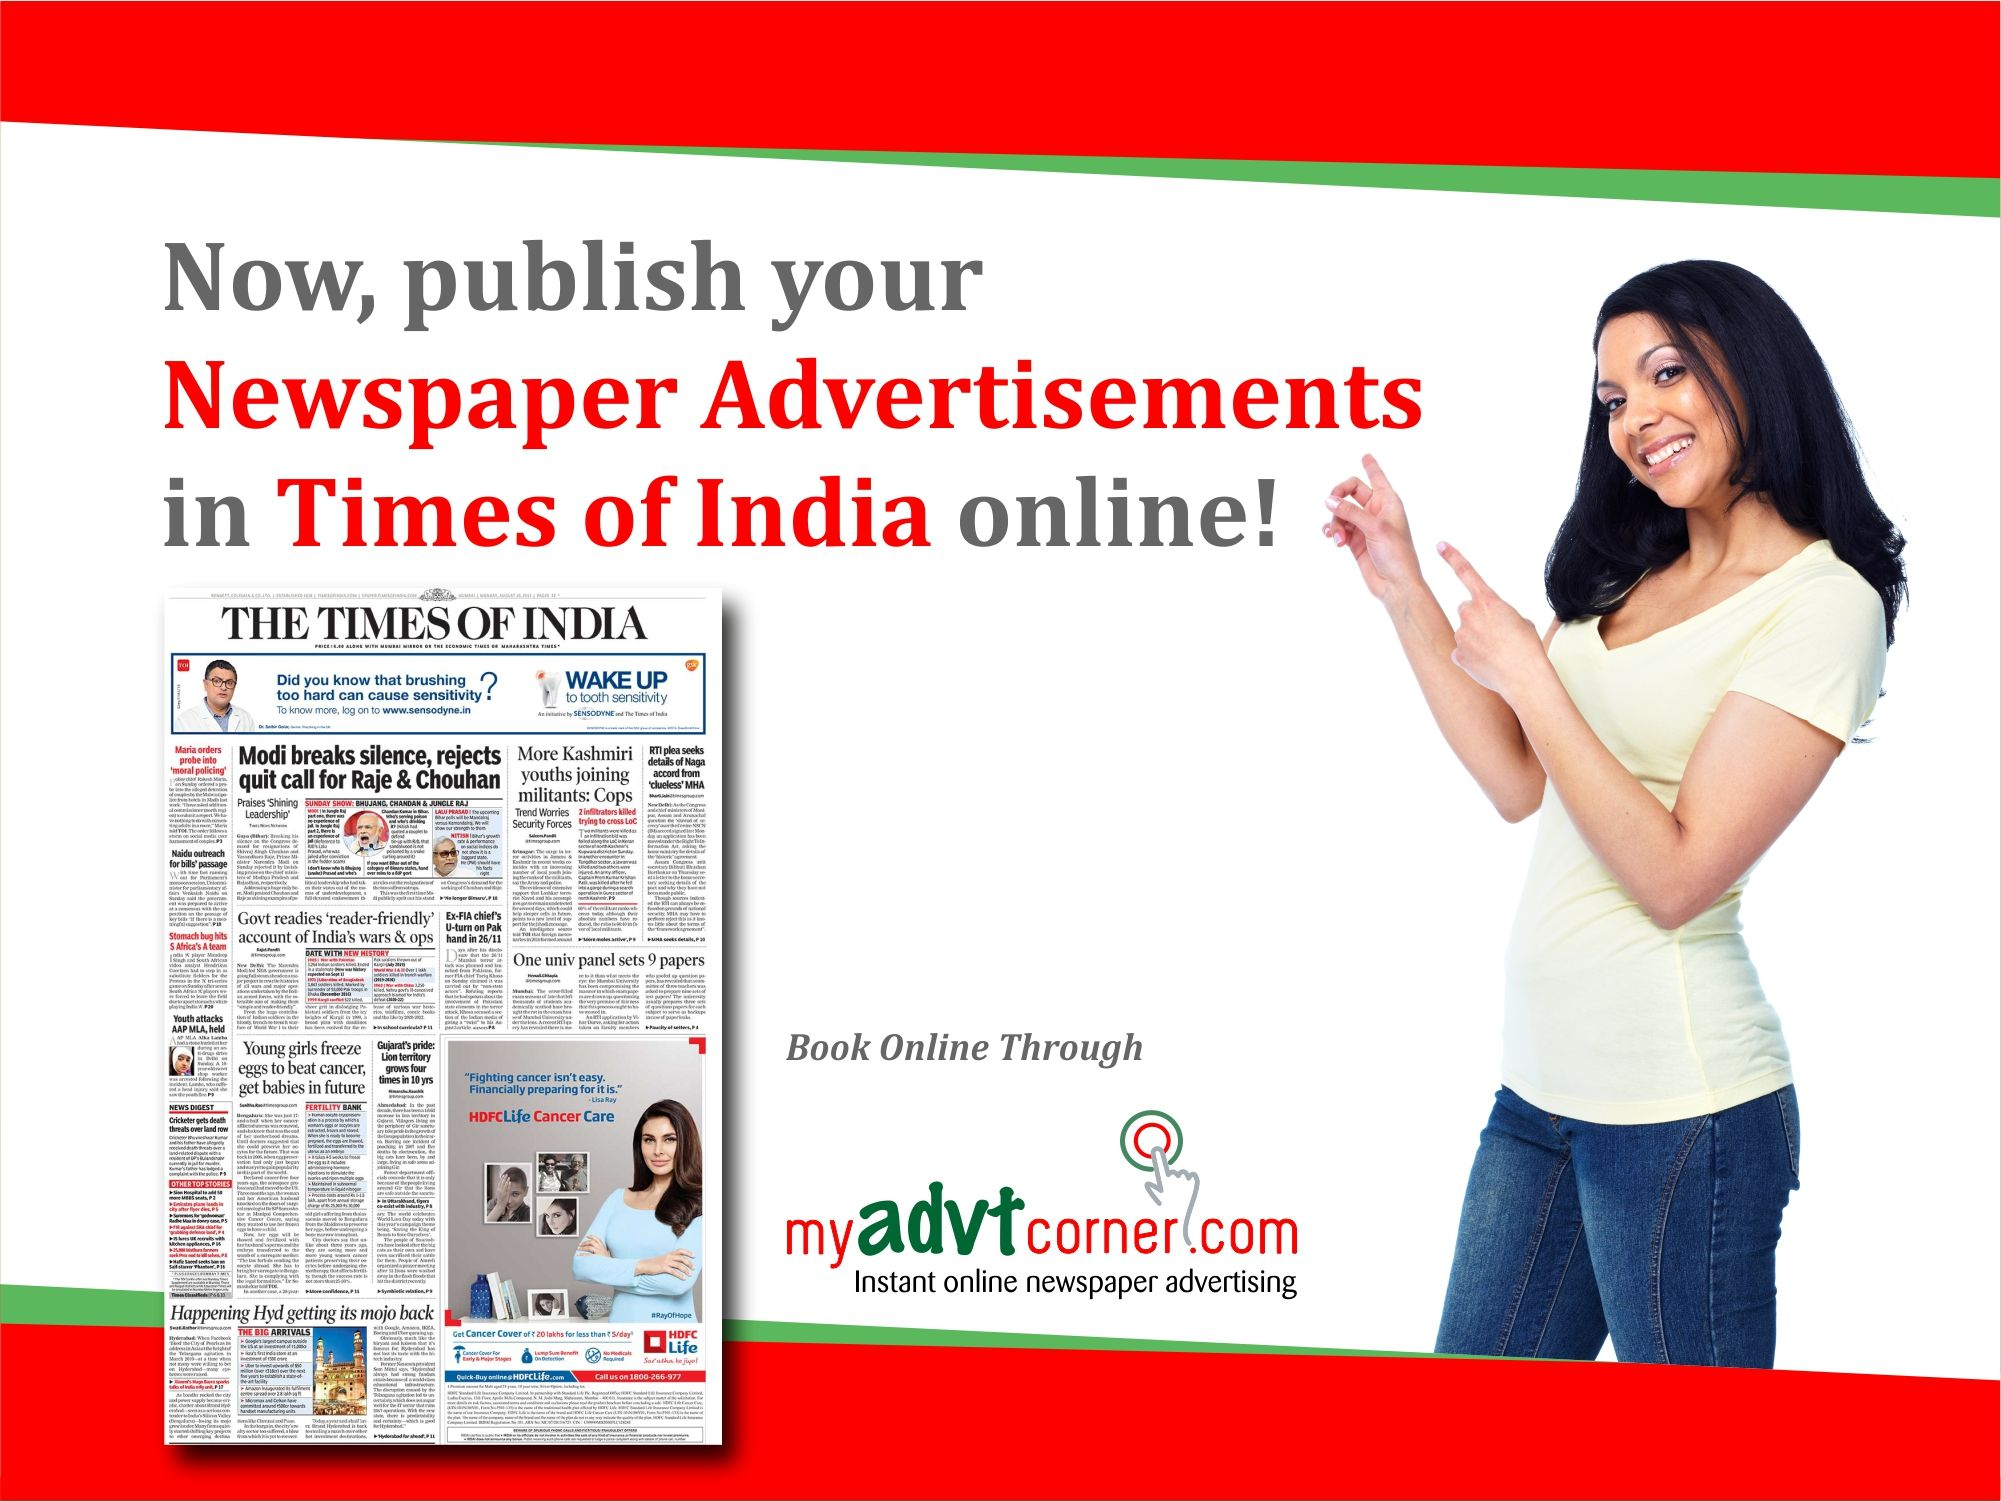 Publish bride and groom ads under matrimonial section in Times of India Newspaper Starting from Rs. 3400 for classified ads booking online or offline in Delhi NCR and other Cities of India. Book Matrimonial Advertisement Online: http://www.myadvtcorner.com/category-matrimonial